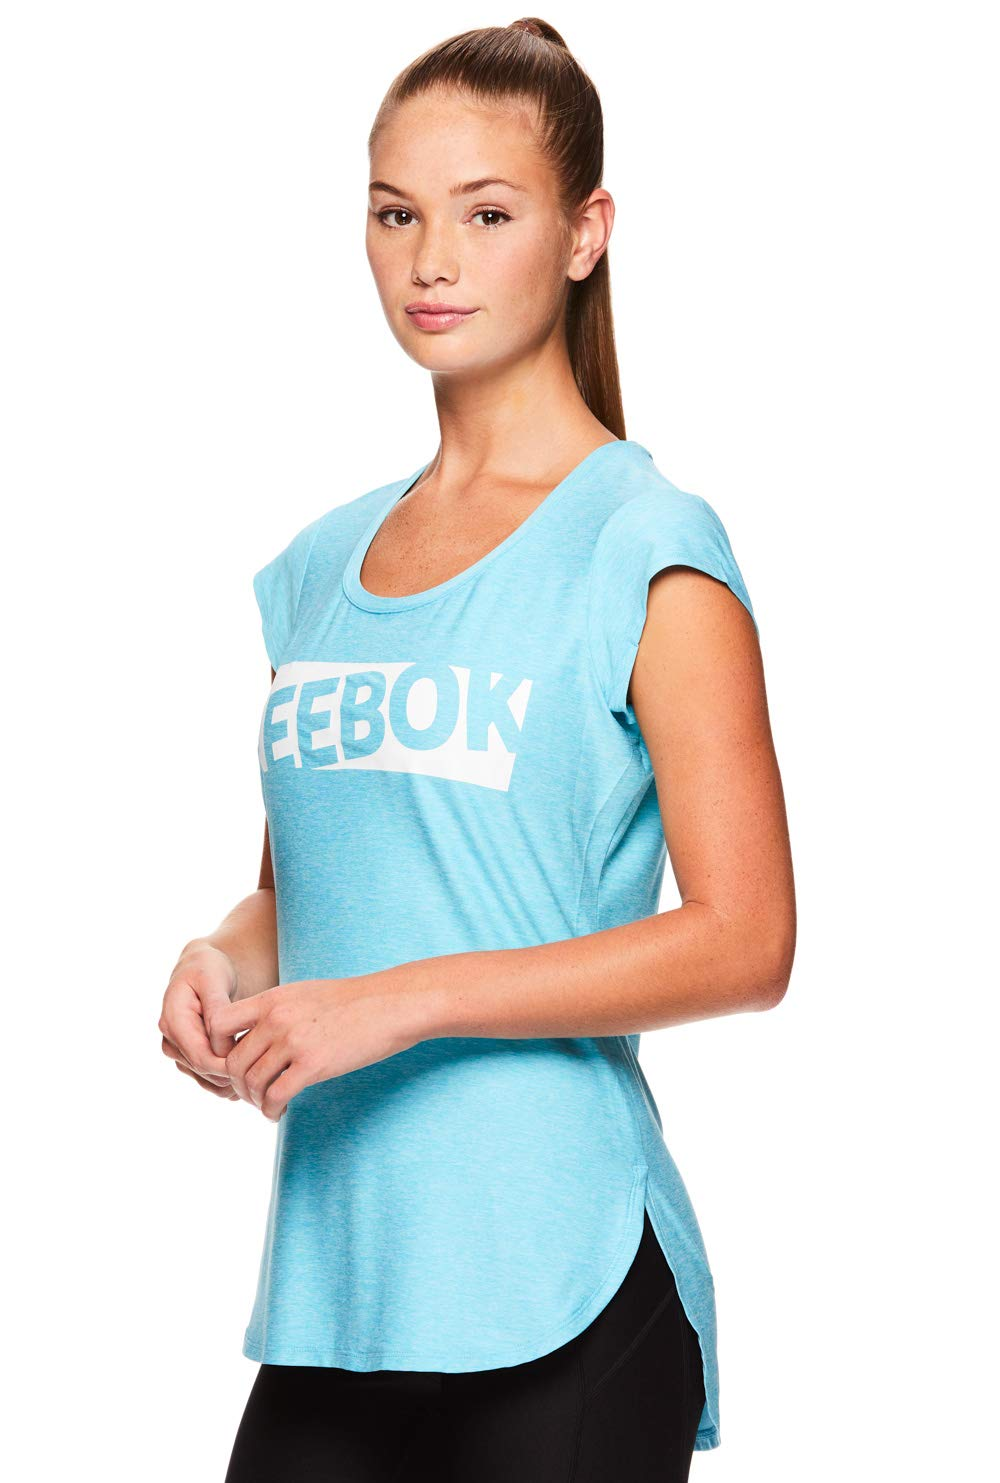 Reebok Women's Legend Performance Top Short Sleeve T-Shirt - Blue Atoll Heather, Extra Small by Reebok (Image #2)